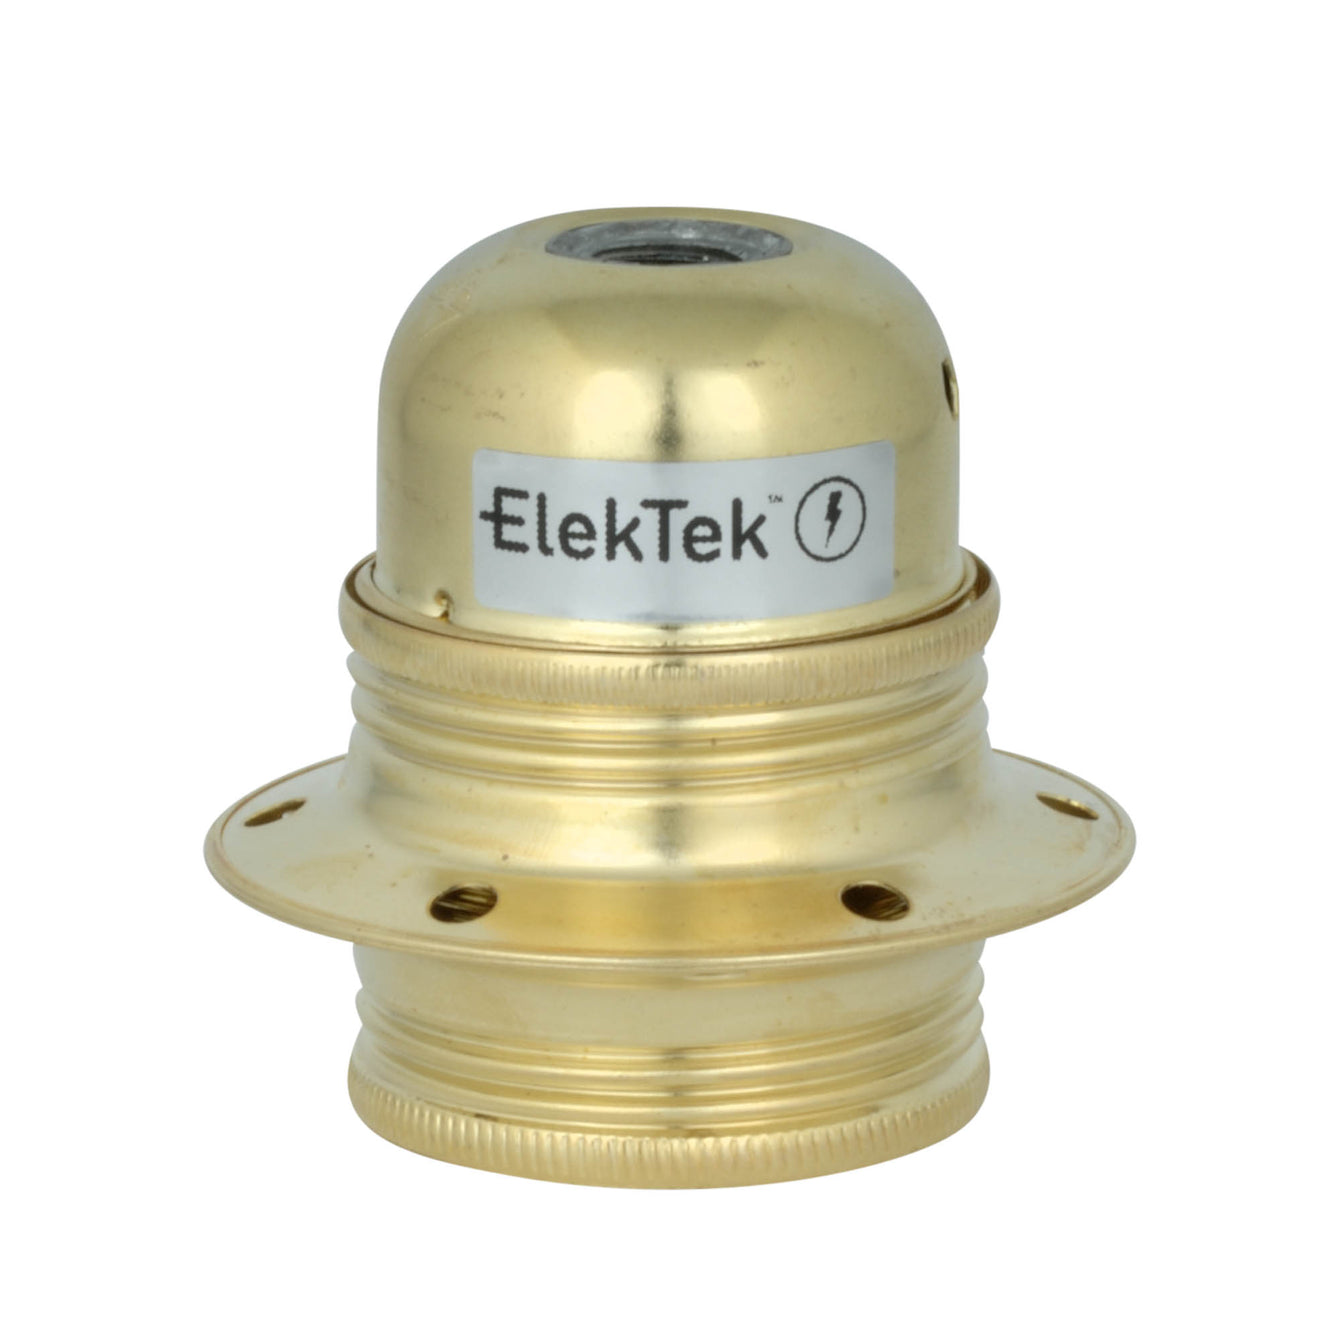 ElekTek ES Edison Screw E27 Economy Cord Grip Lamp Holder With Shade Ring - Buy It Better Nickel